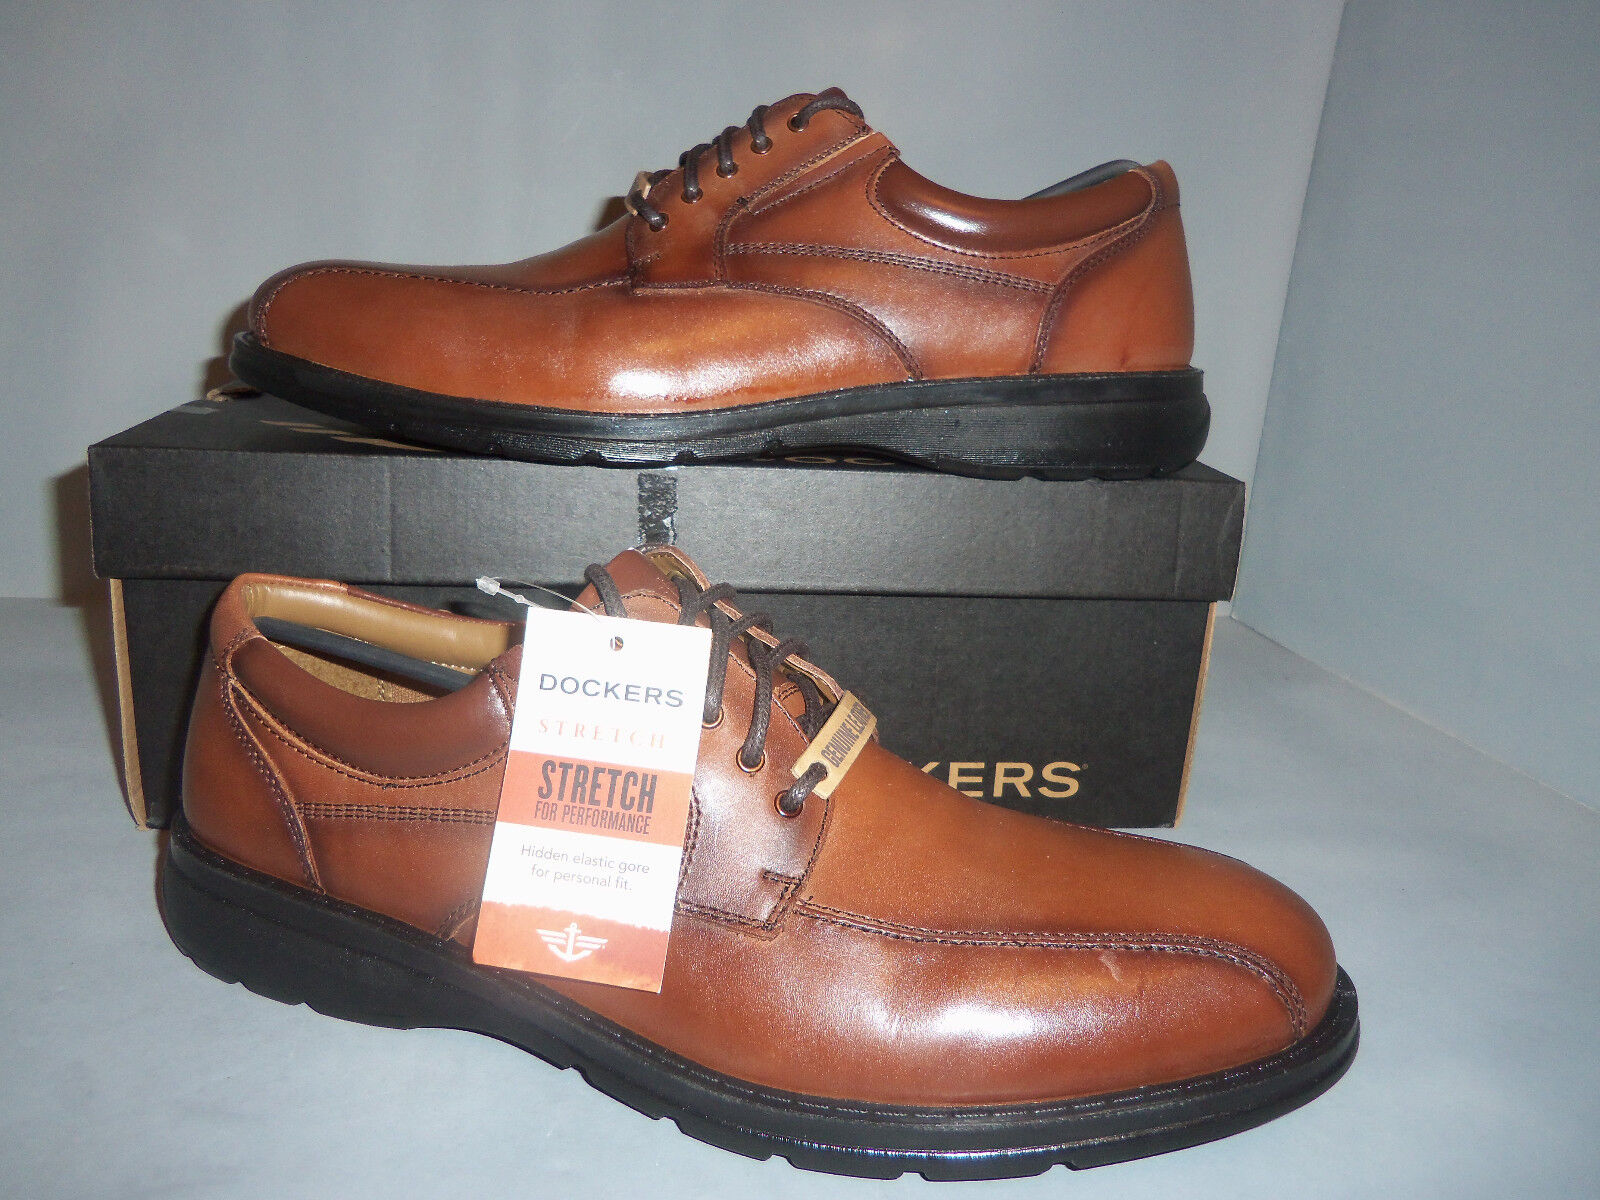 Dockers Trustee Men's Dress shoes Brown LEATHER NIB NEW SIZES  Casual Dress